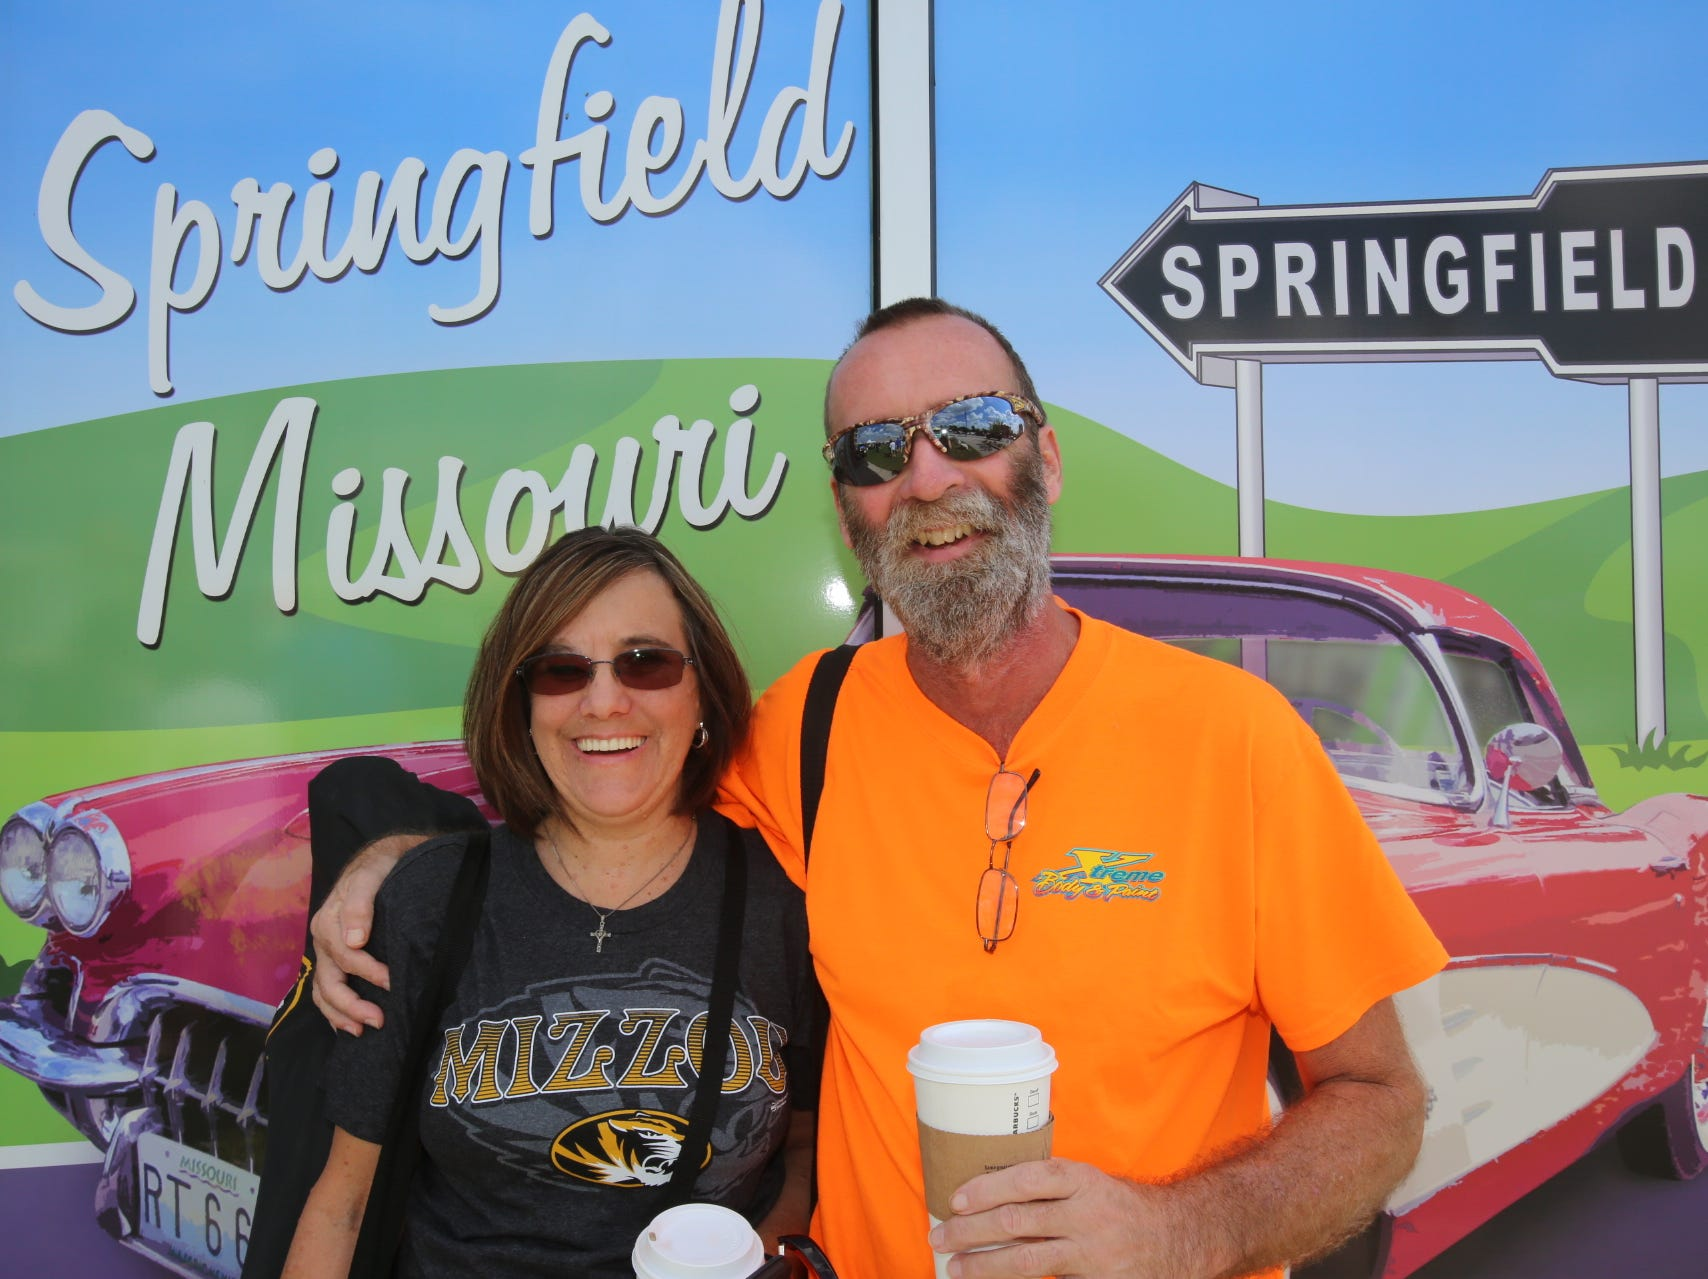 Stephanie Wingate and Jim Scheppers